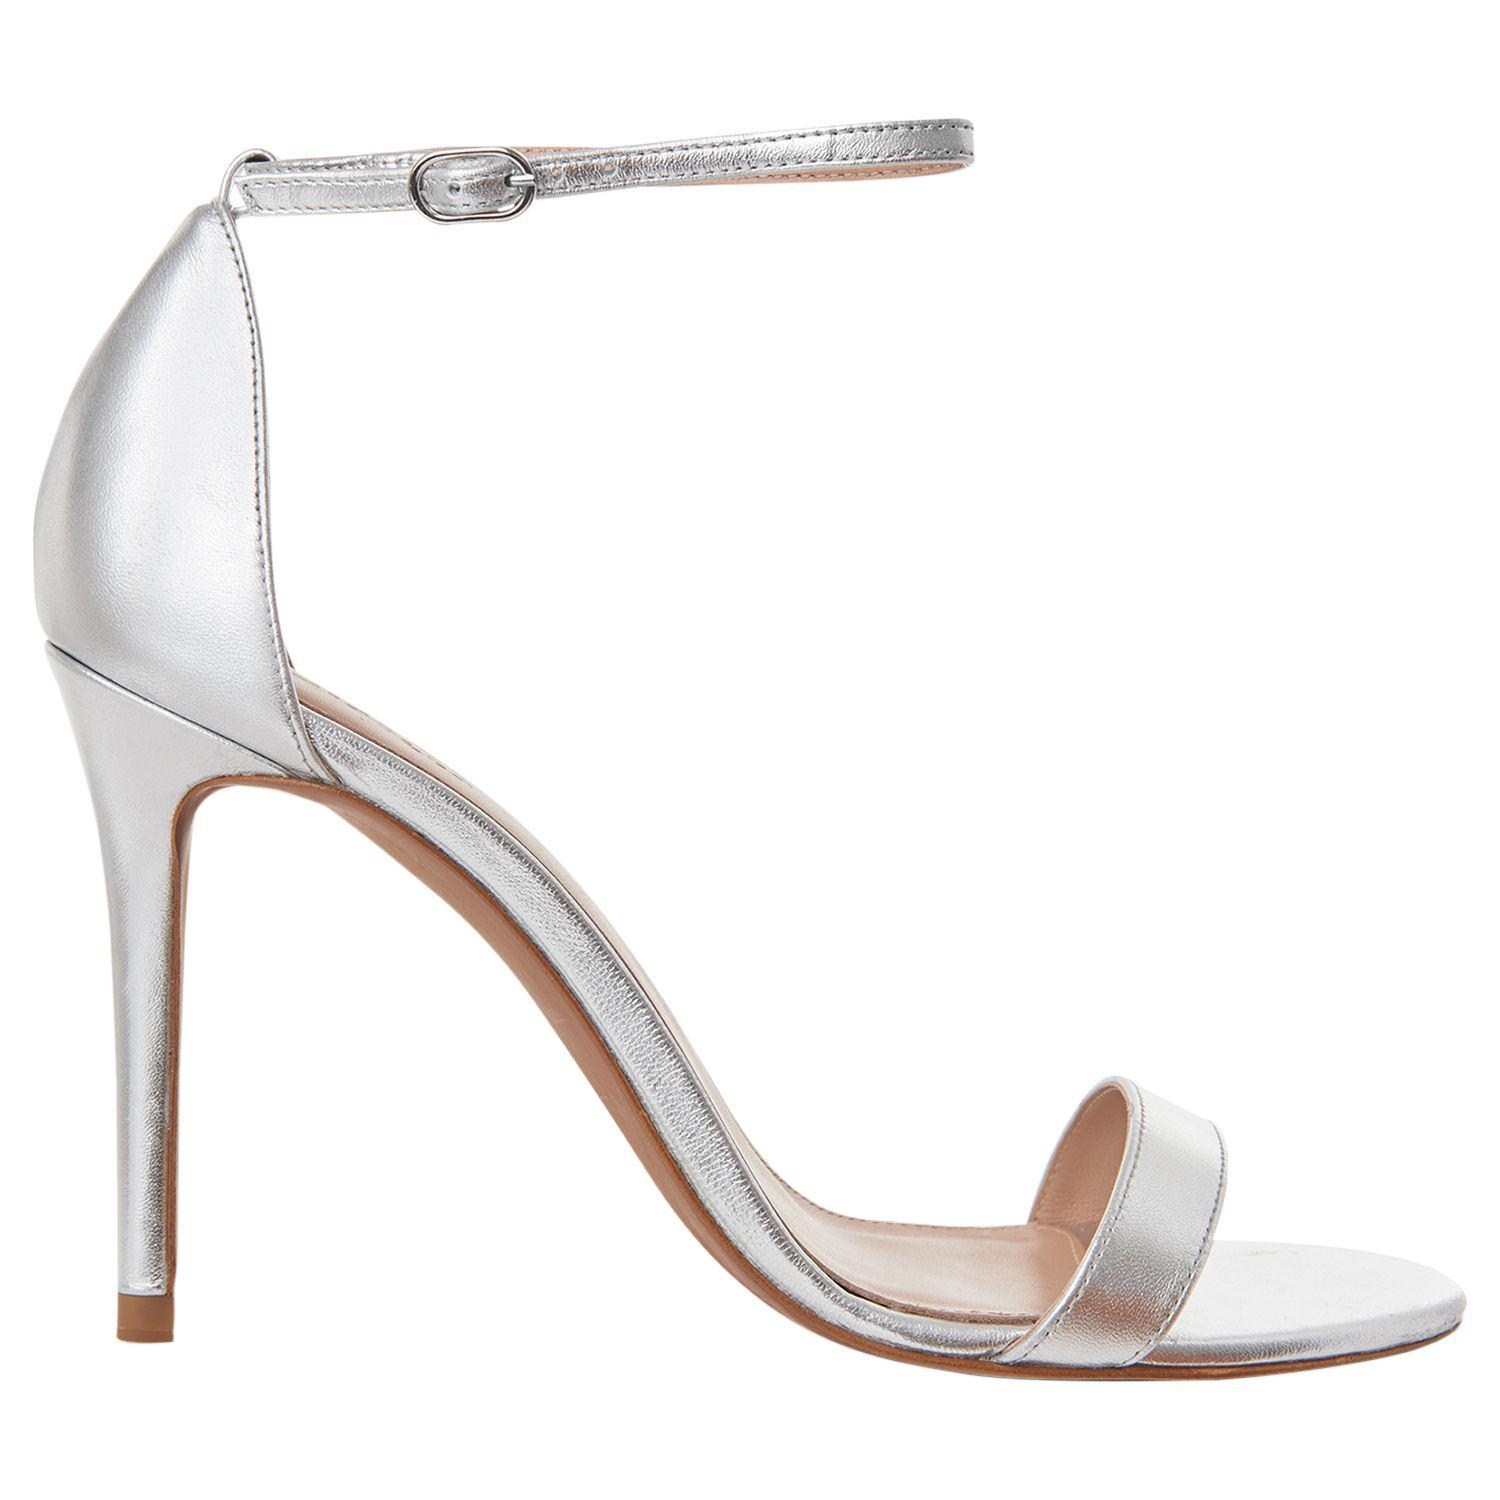 3a36aee29f37 Whistles. Women s Metallic Ellie Strappy Sandals. £145 £89 From John Lewis  and Partners